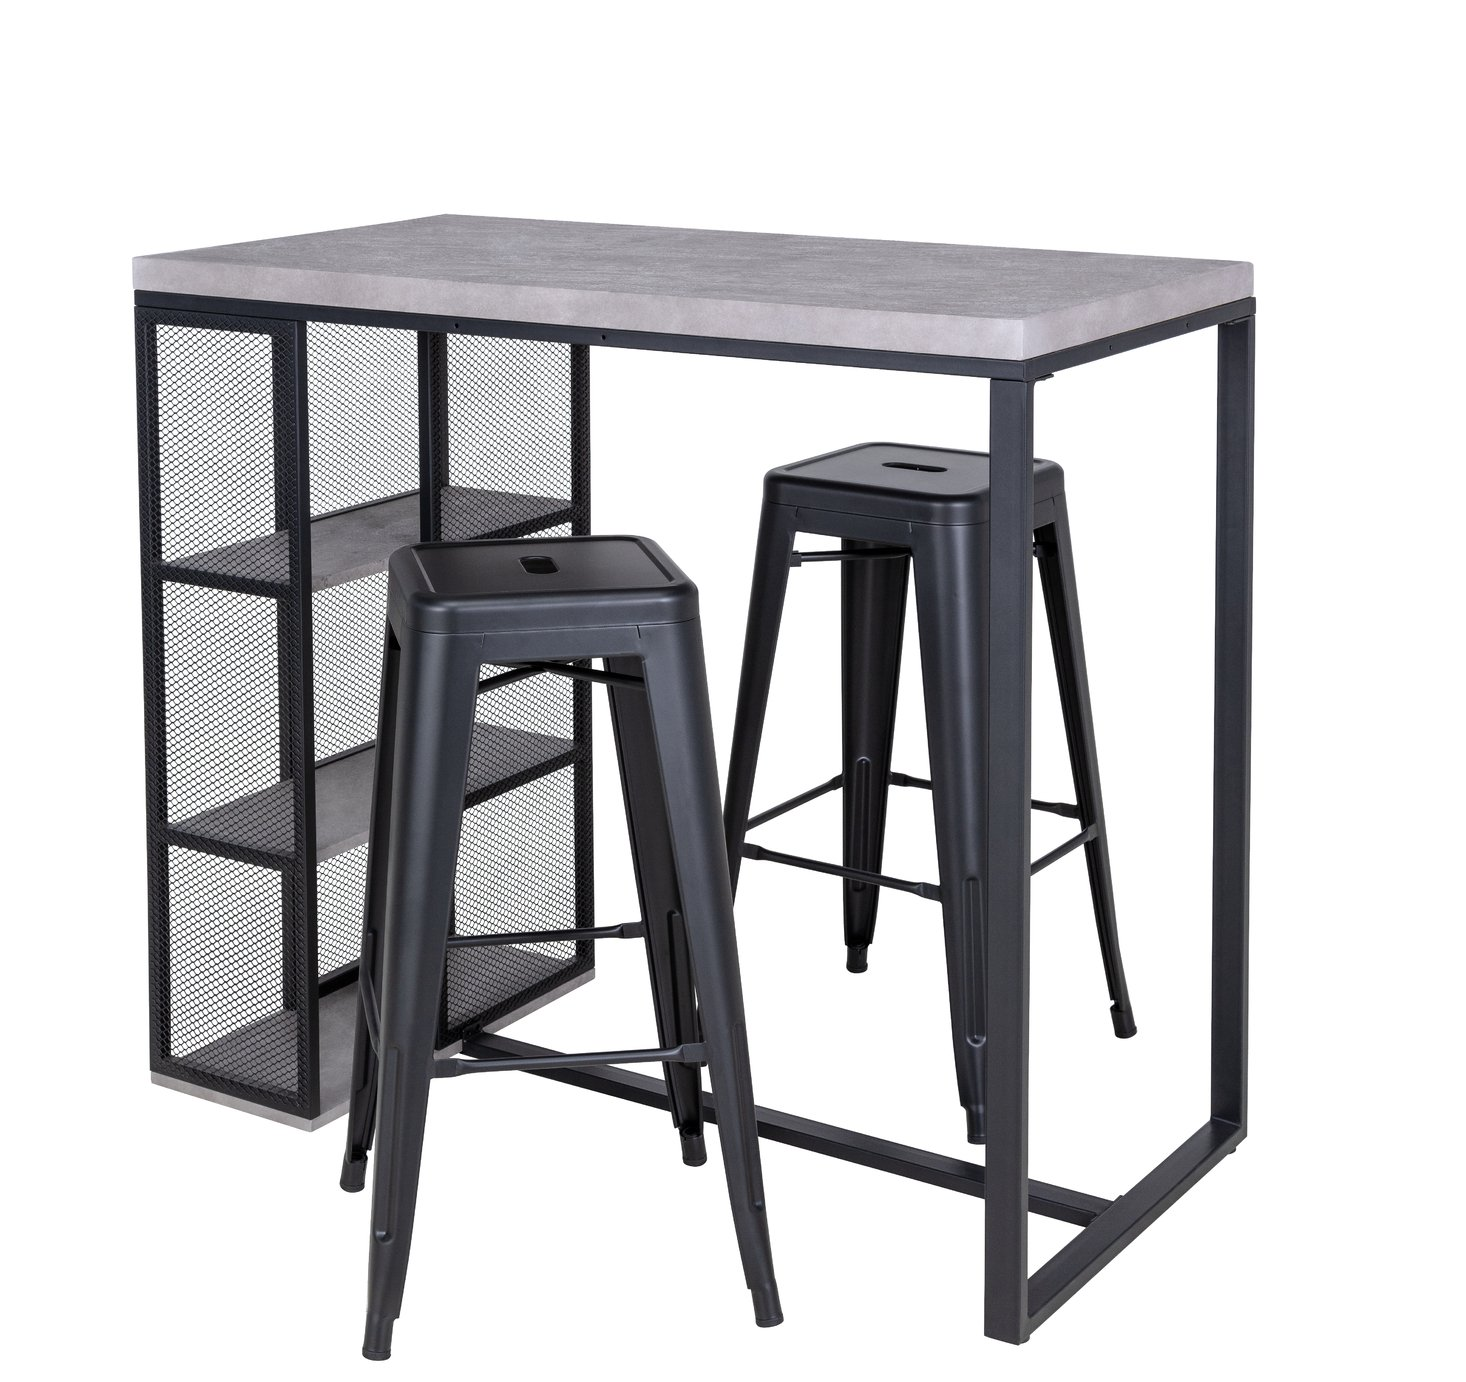 Argos Home Stone Effect Bar Table & 2 Bar Stools